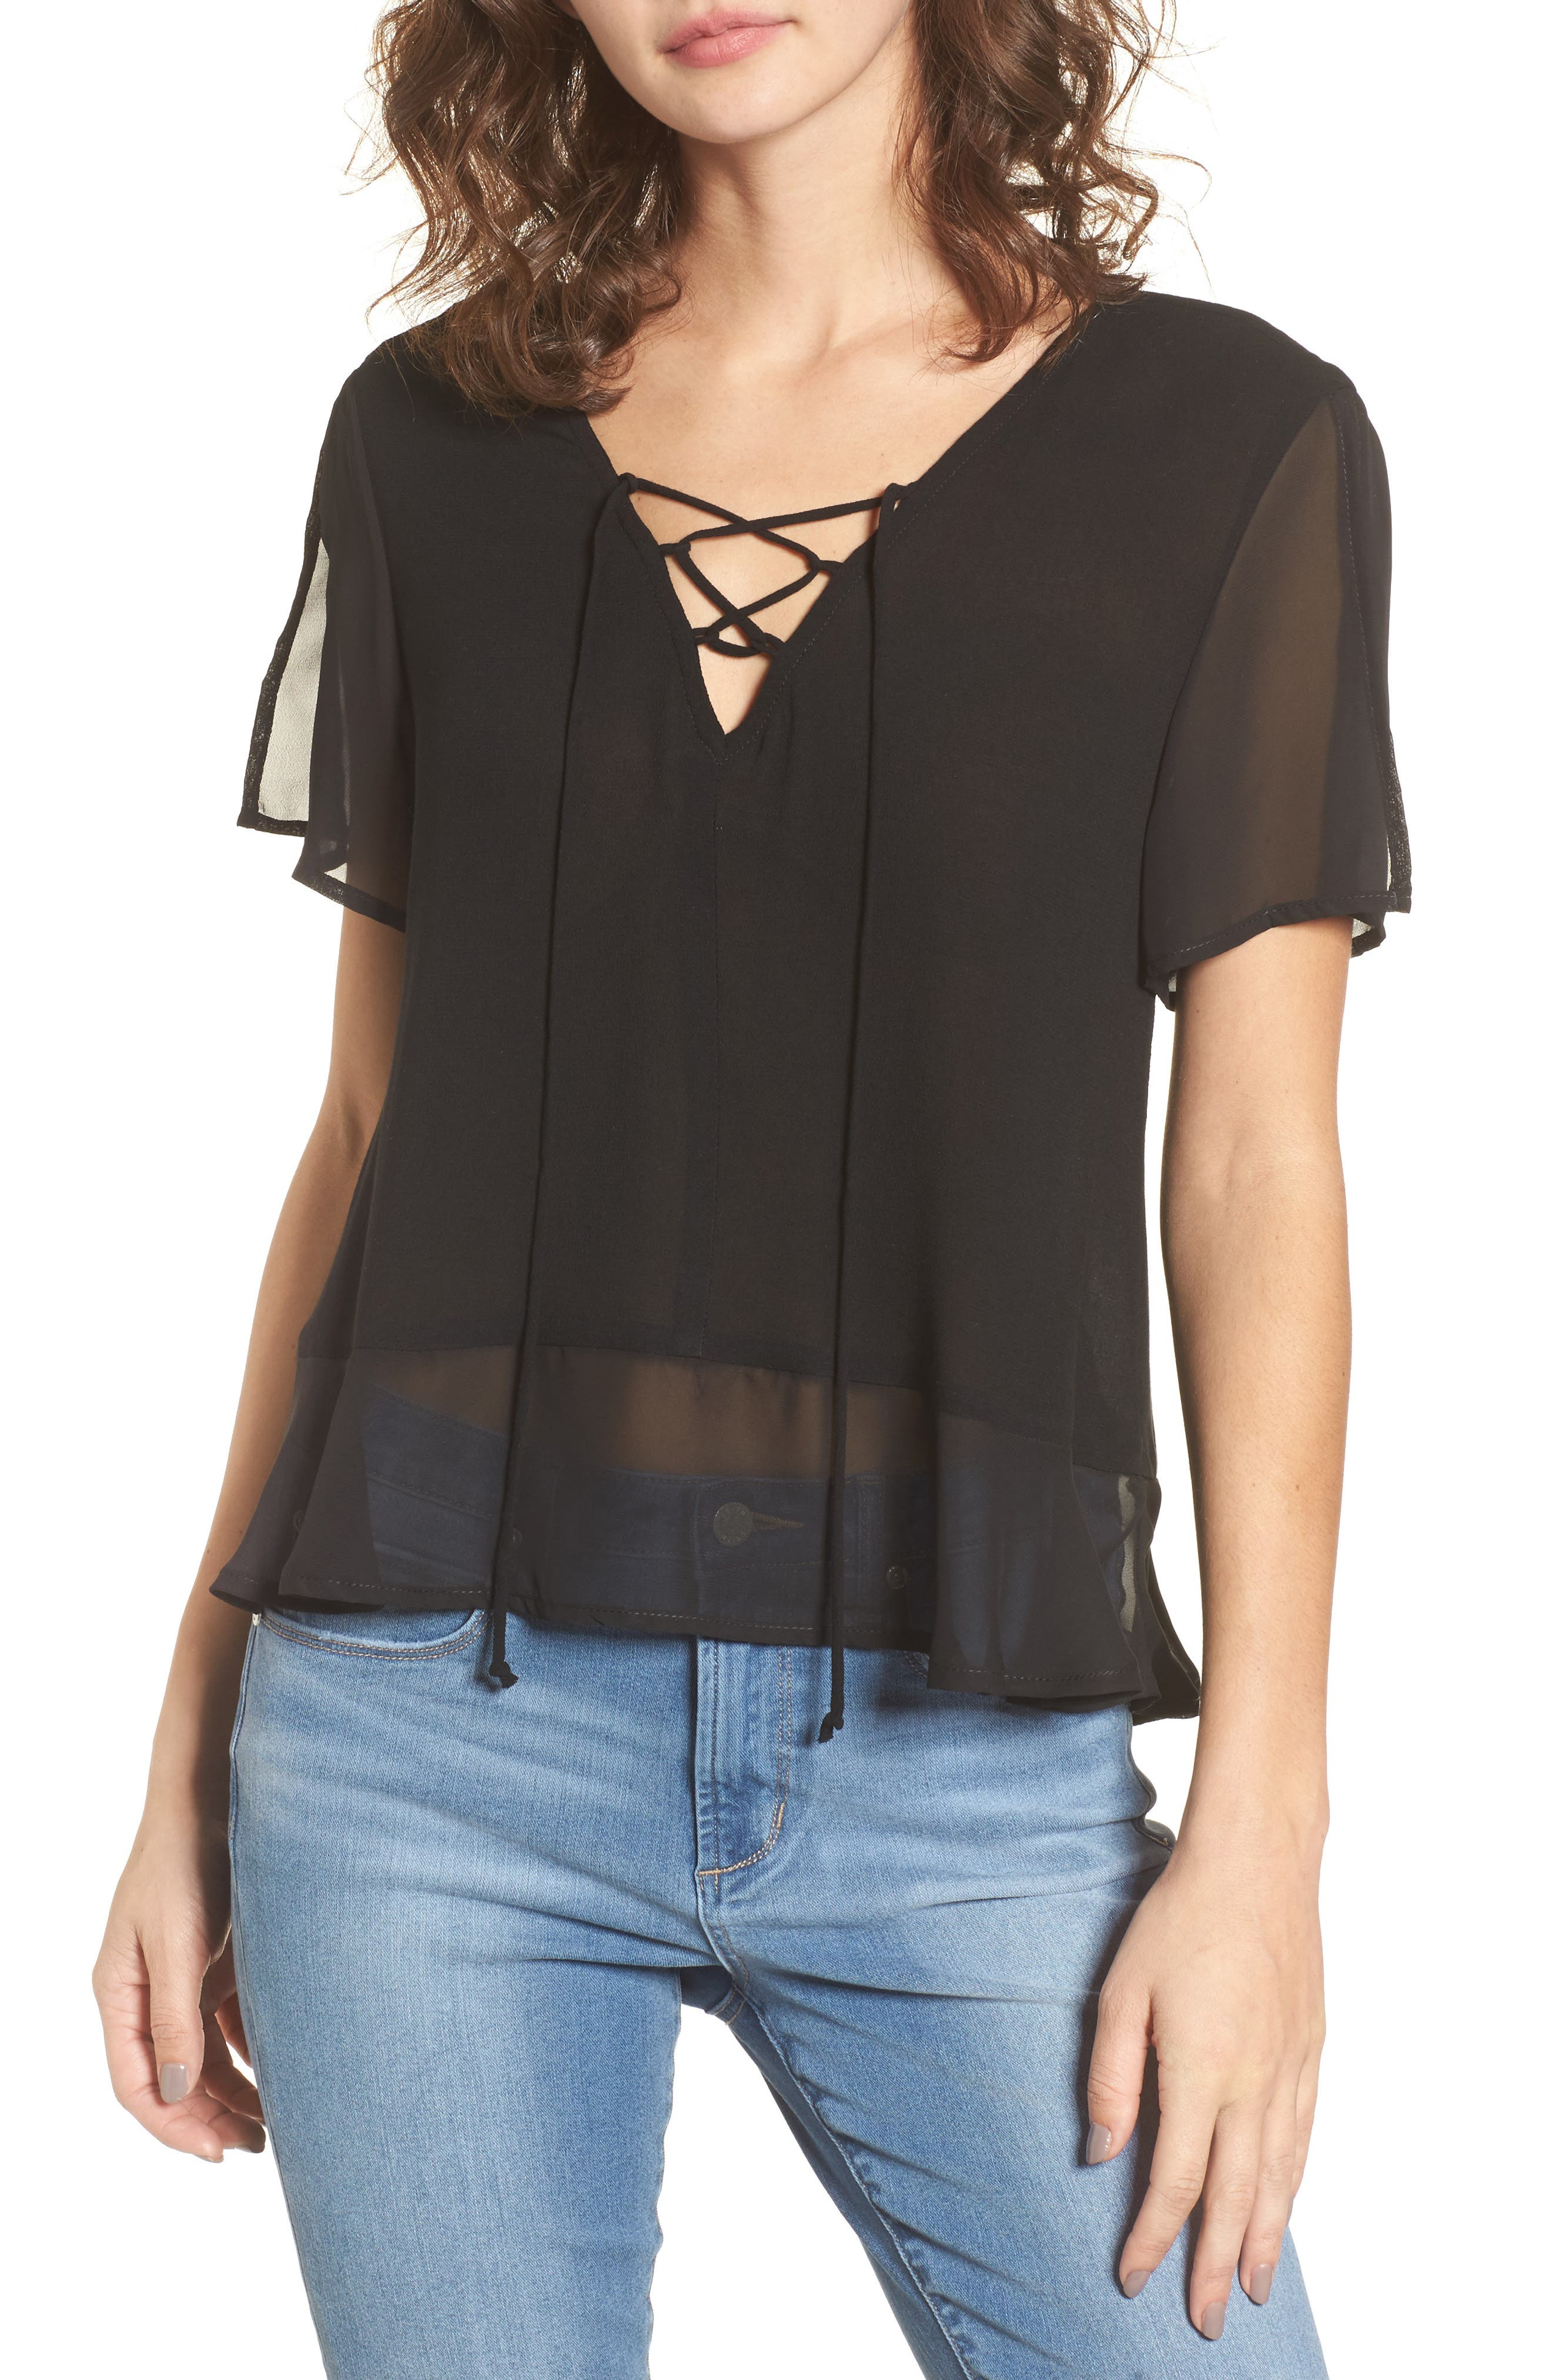 Mimi Chica Lace-Up Mini Peplum Tee